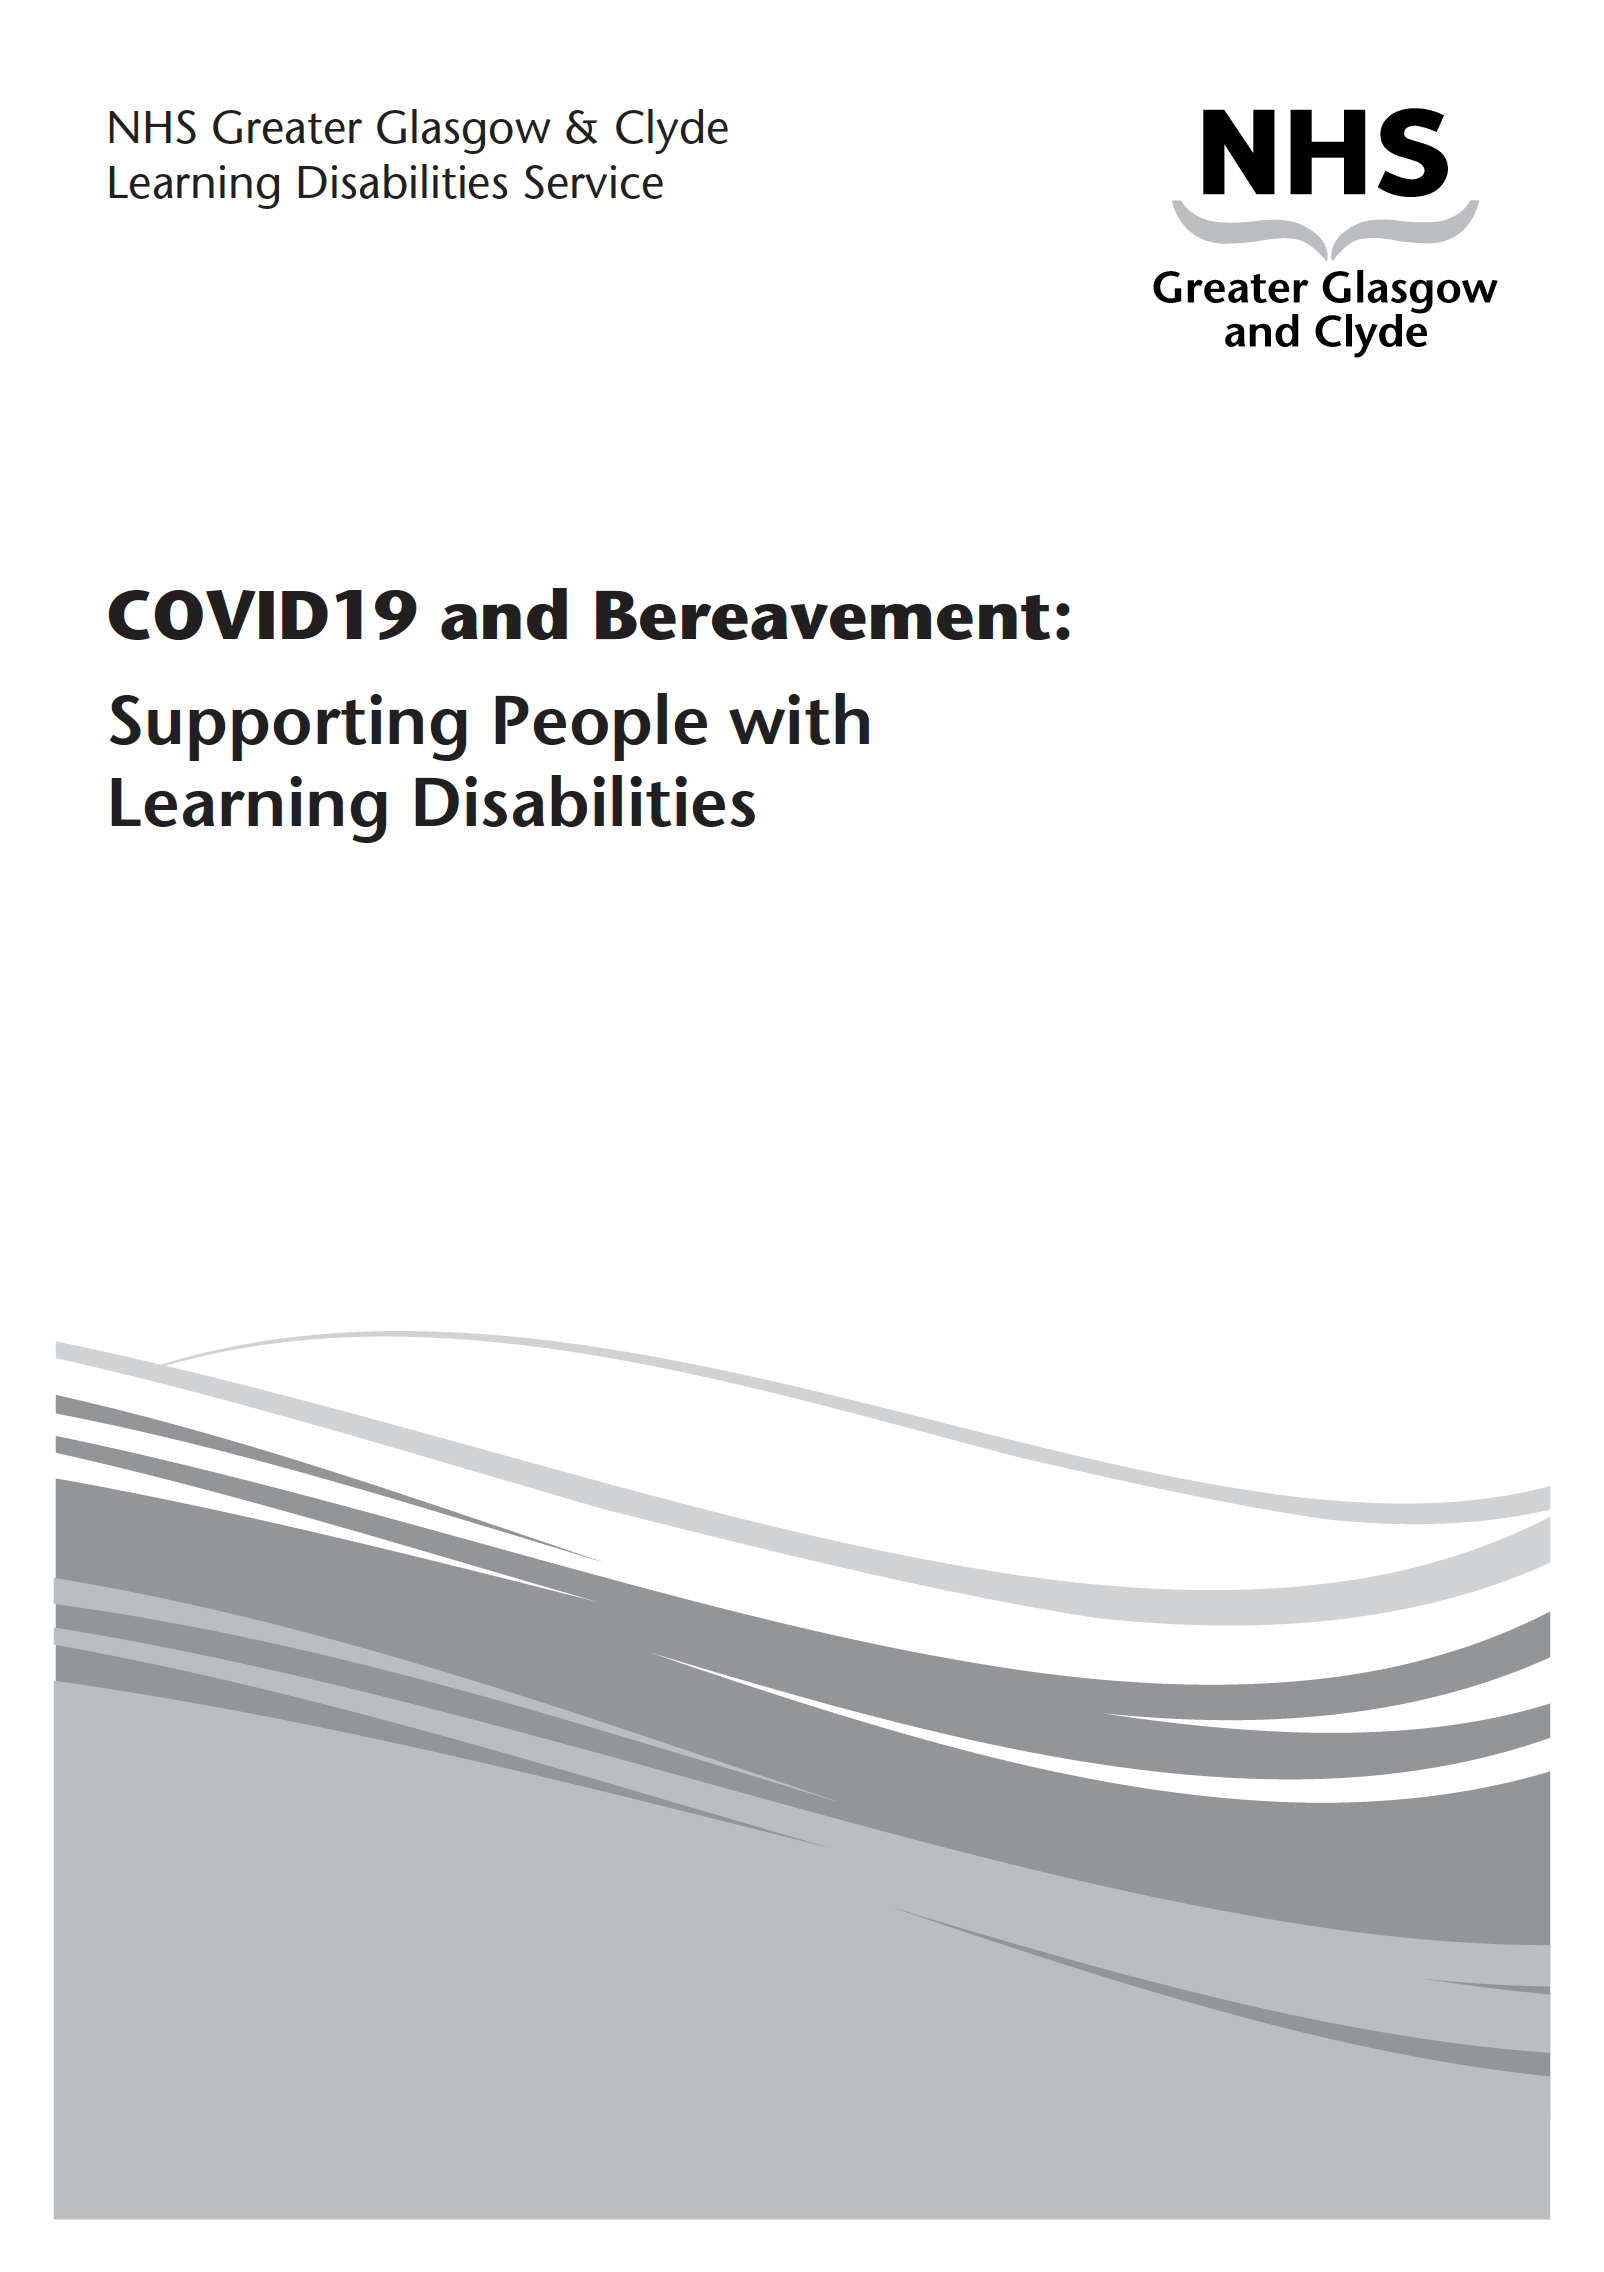 COVID-19 and Bereavement